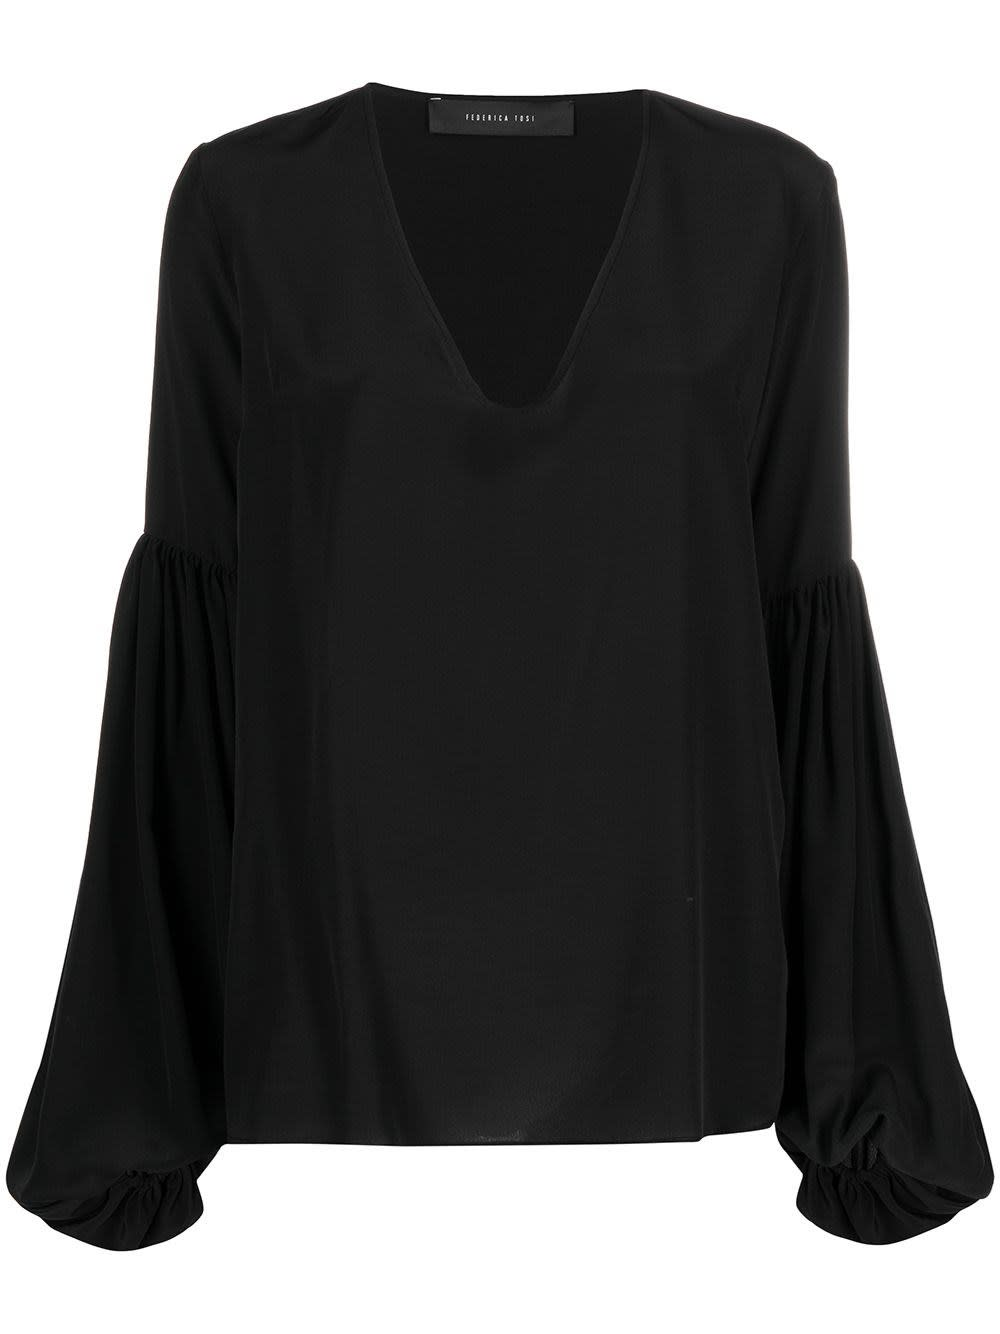 Federica Tosi BLACK SILK BLOUSE WITH PUFF SLEEVES